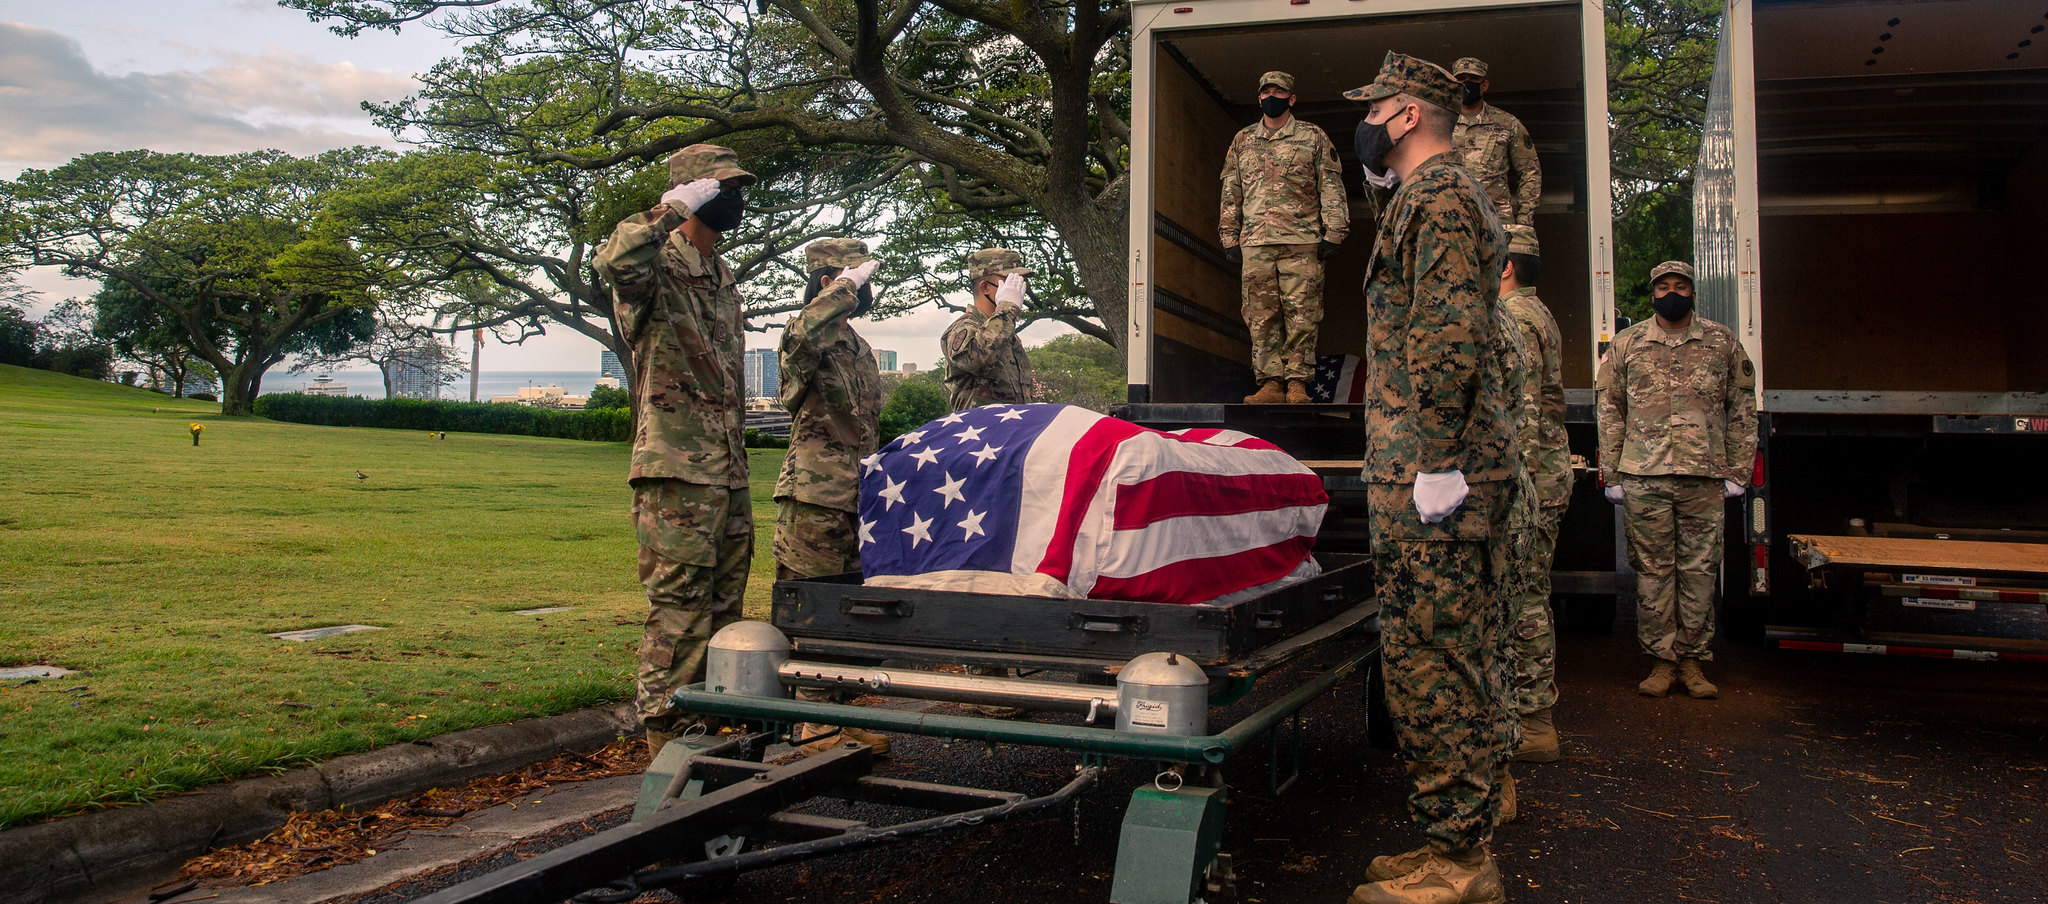 Members of the Defense POW/MIA Accounting Agency (DPAA) salute a casket while participating in a disinterment ceremony at the National Memorial Cemetery of the Pacific, Honolulu, Hawaii, April 19, 2021. The ceremony was part of DPAA's efforts to disinter the remains of unknown service members lost during the Korean War. (Sgt. Jacqueline A. Clifford/Marine Corps)